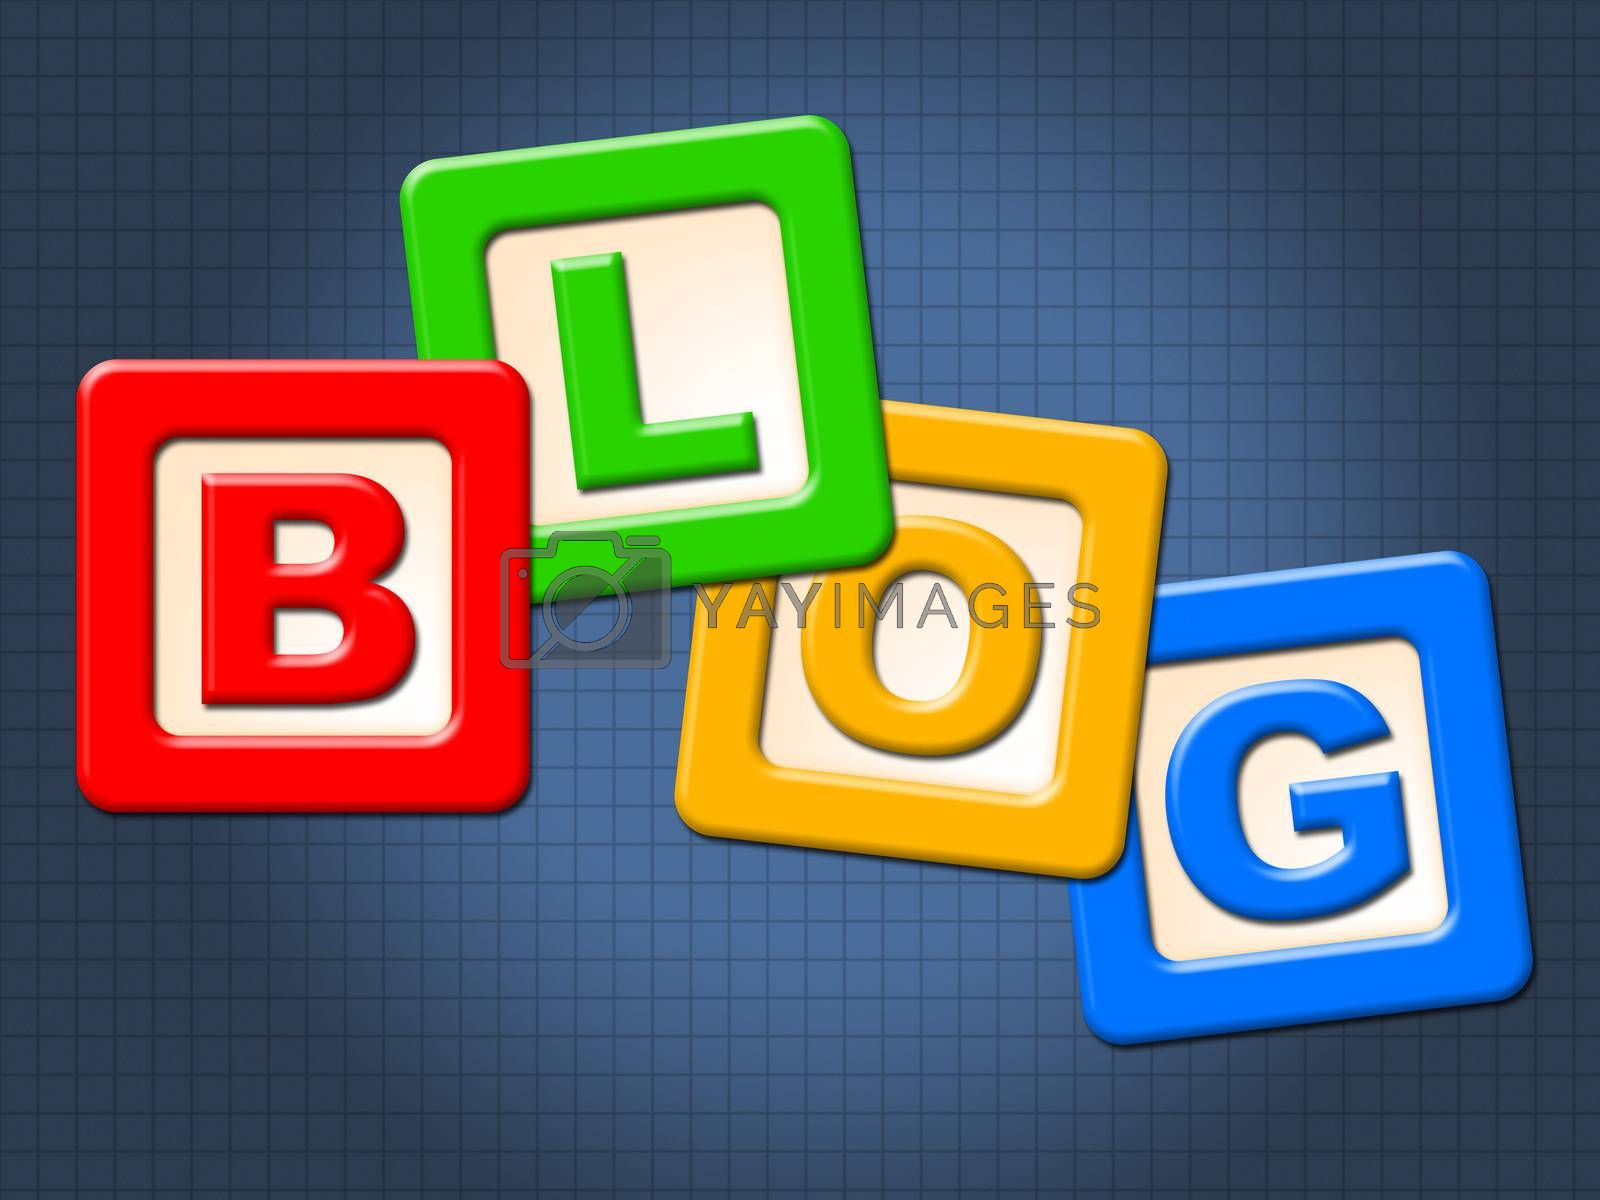 Blog Blocks Shows Childhood Blogging And Youths by stuartmiles